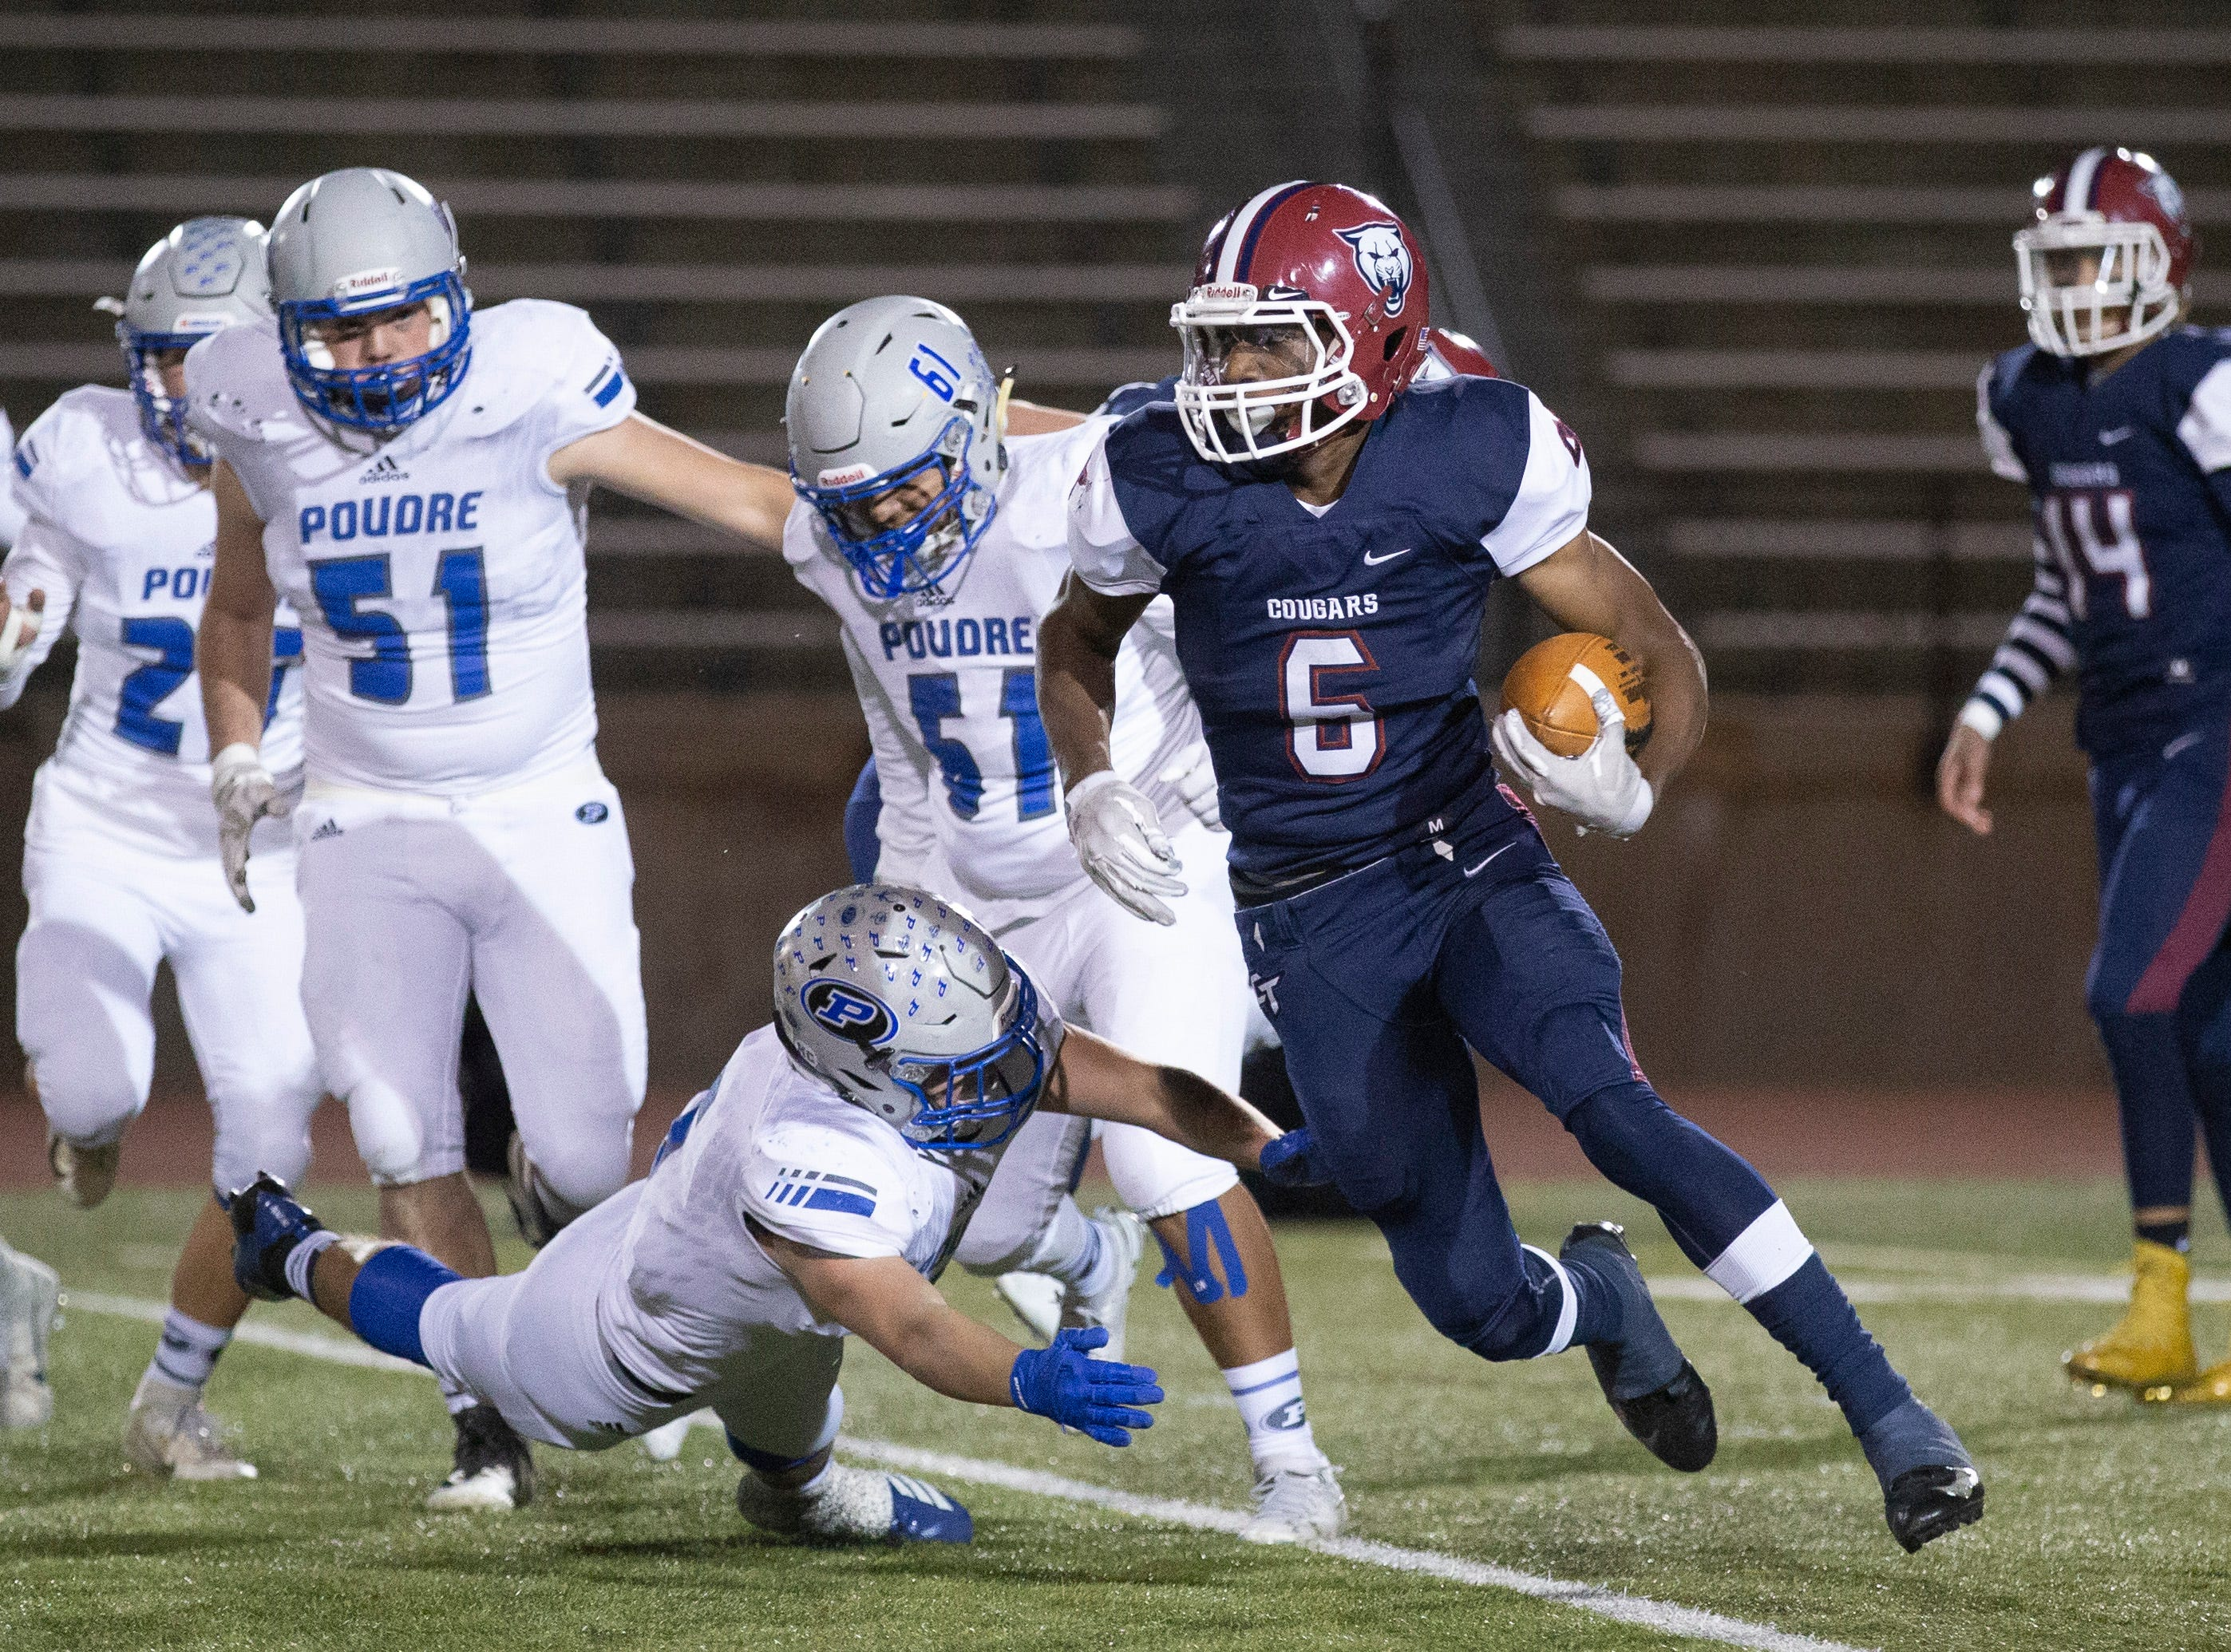 Cherokee Trail High School's Malik Sparrow escapes a tackle from a Poudre High School defender during the first quarter of the opening round playoff game on Friday evening in Aurora.